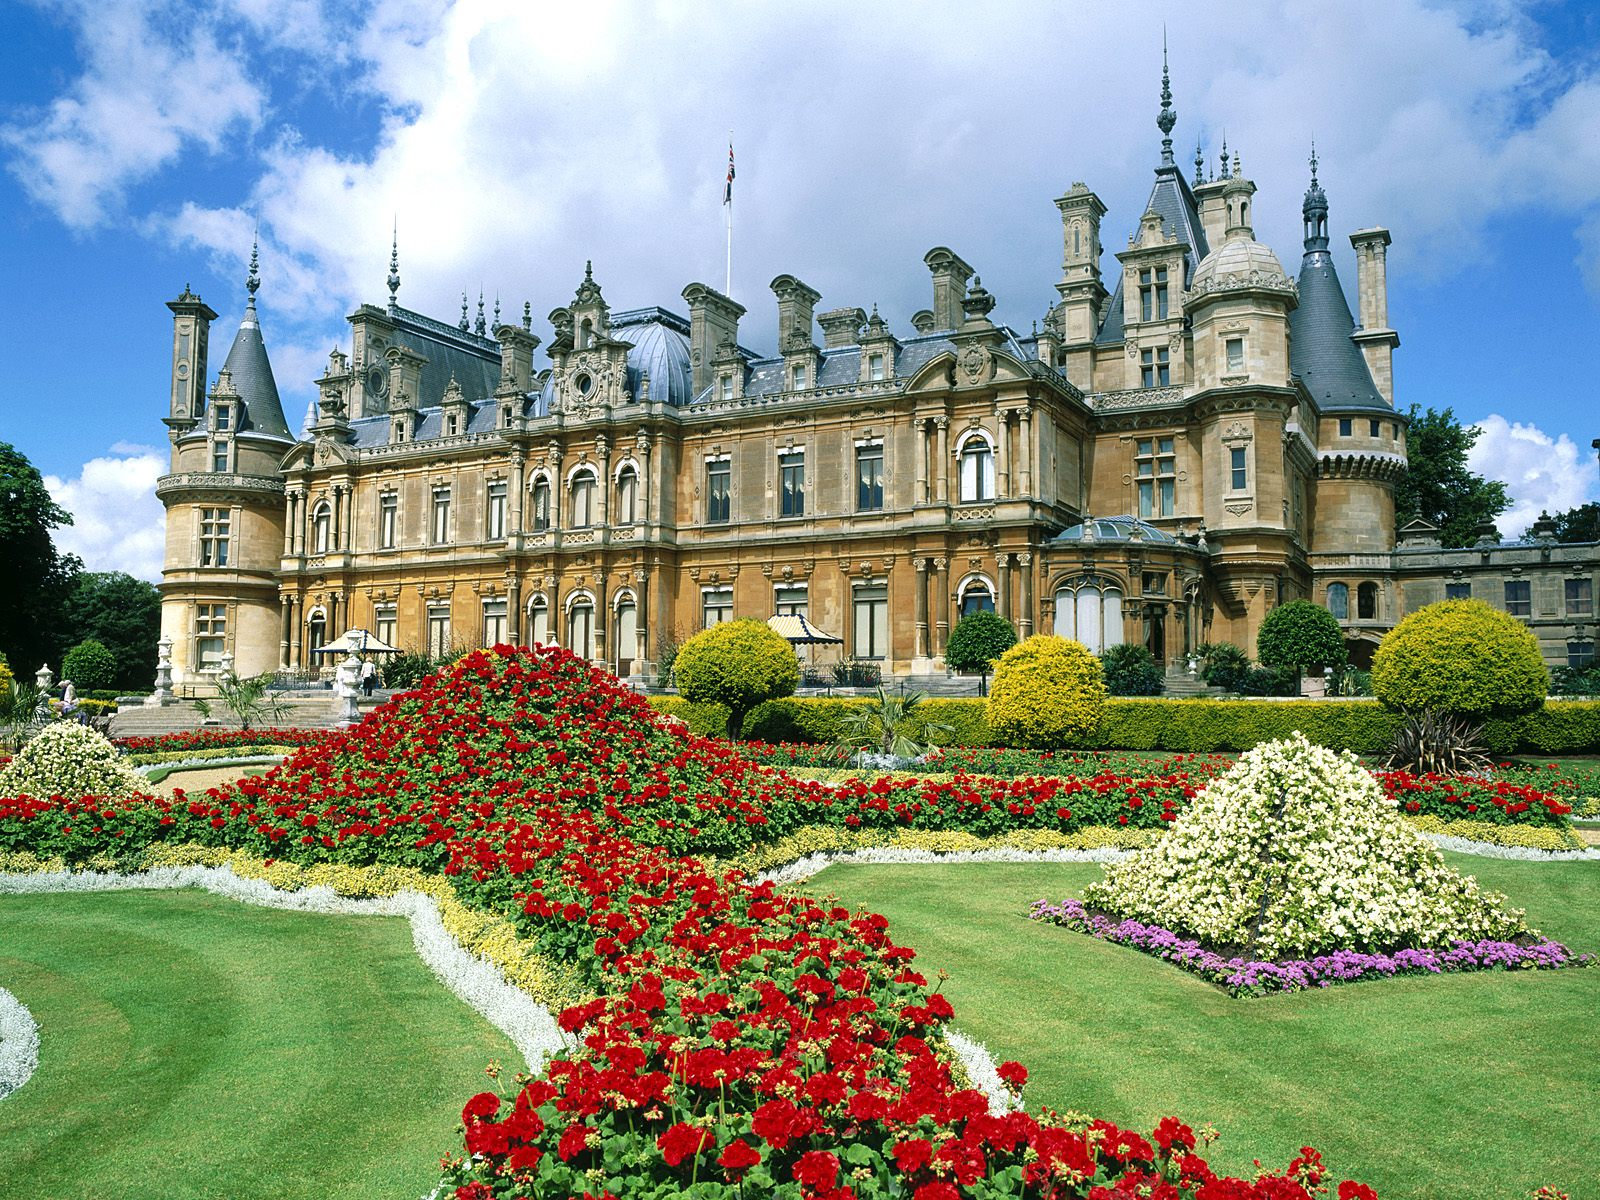 Waddesdon Manor England Wallpapers HD Wallpapers 1600x1200